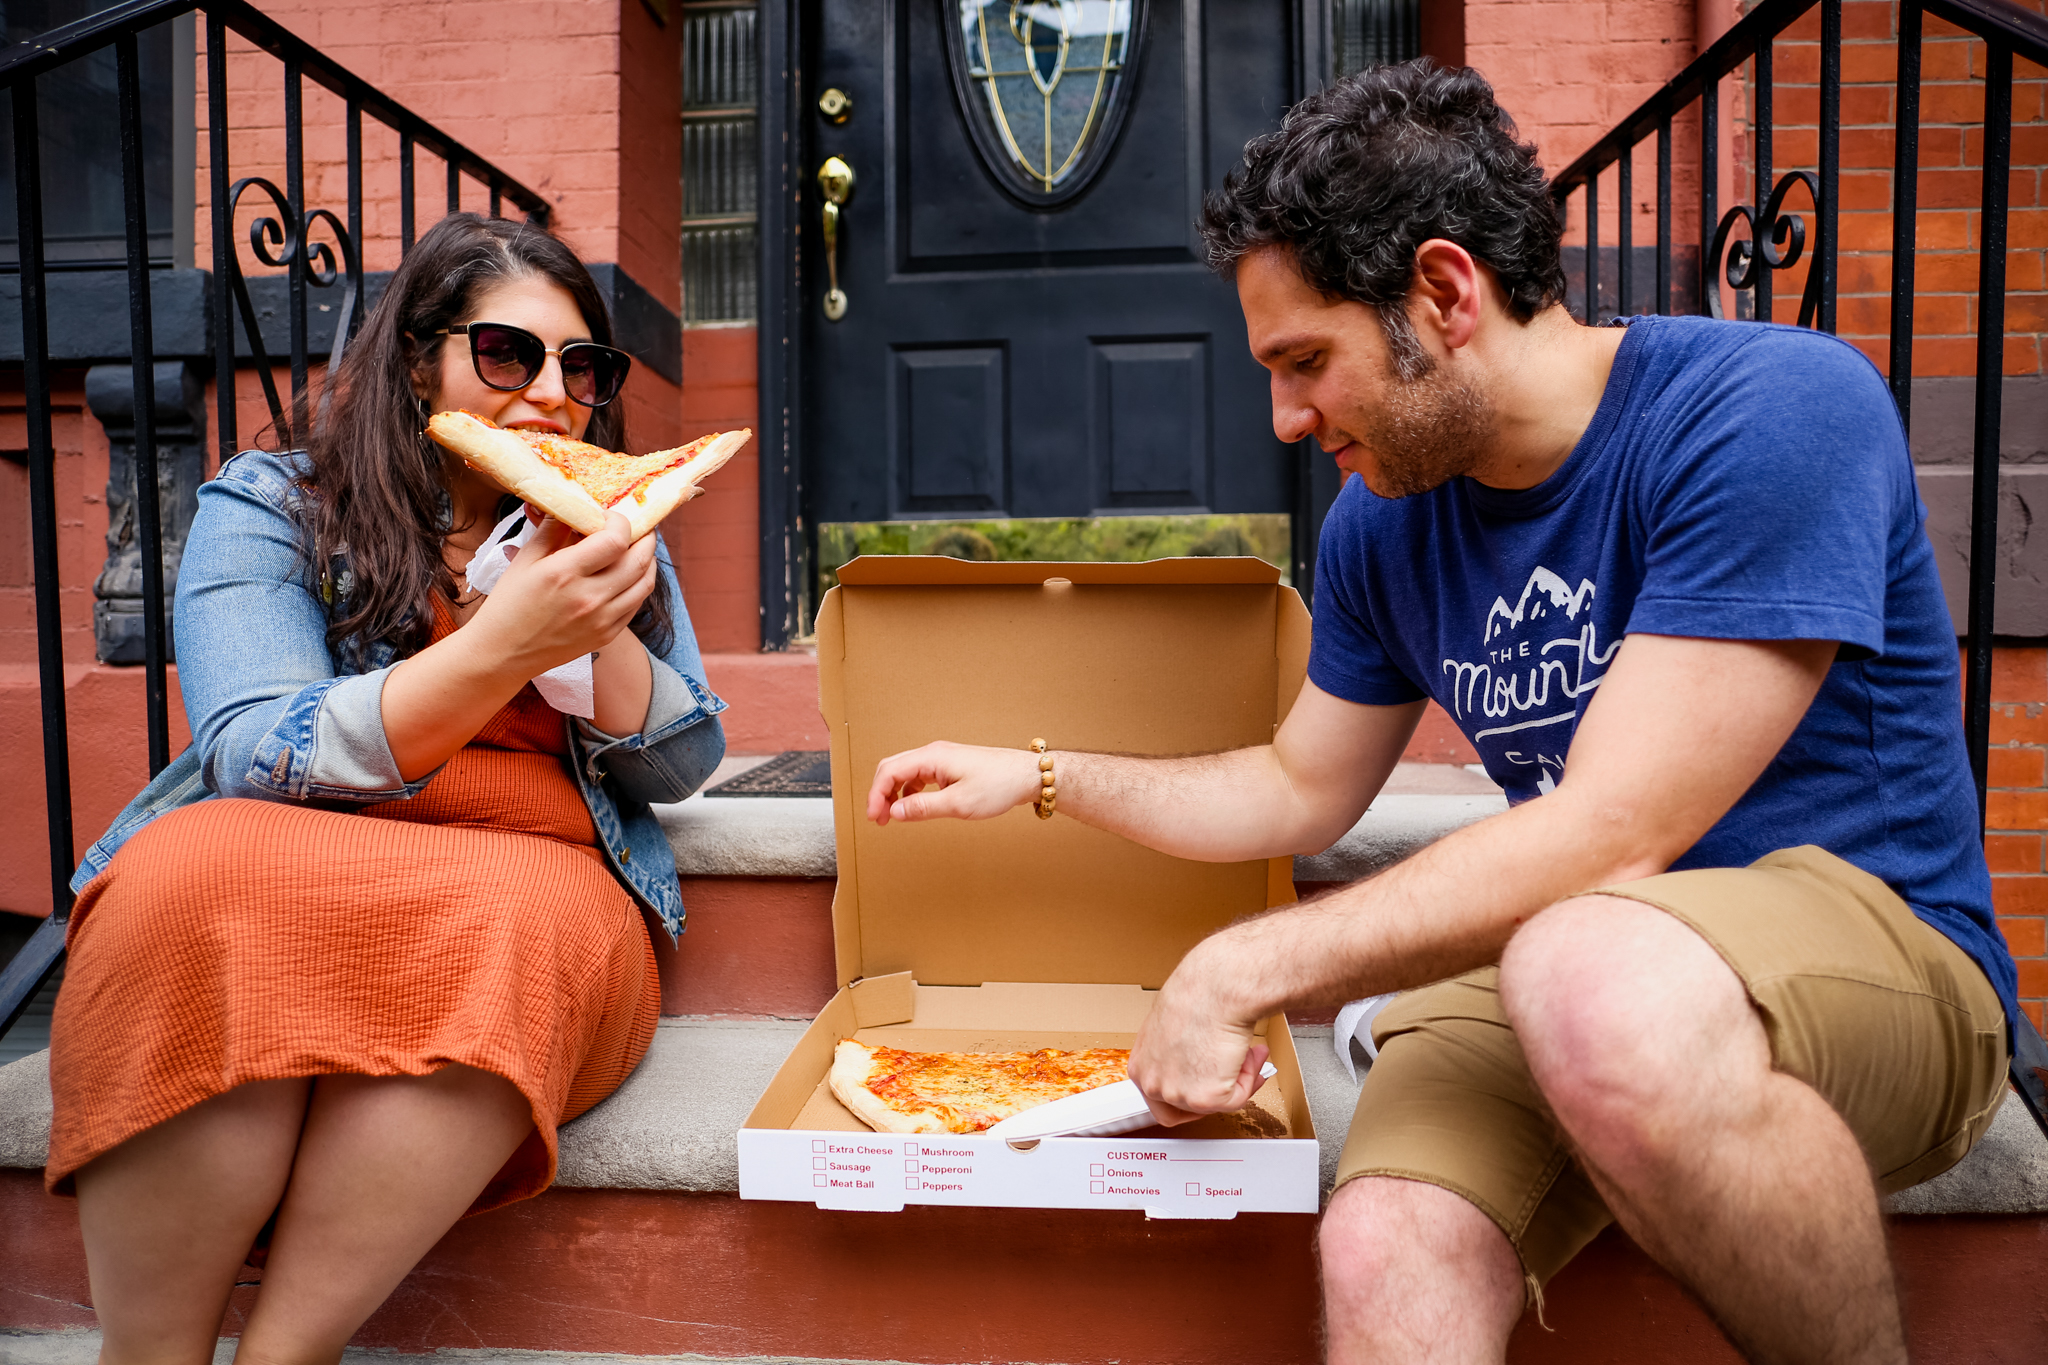 Pizza on the stoop. Candid, natural engagement session by Jen Grima, Lehigh Valley photographer.